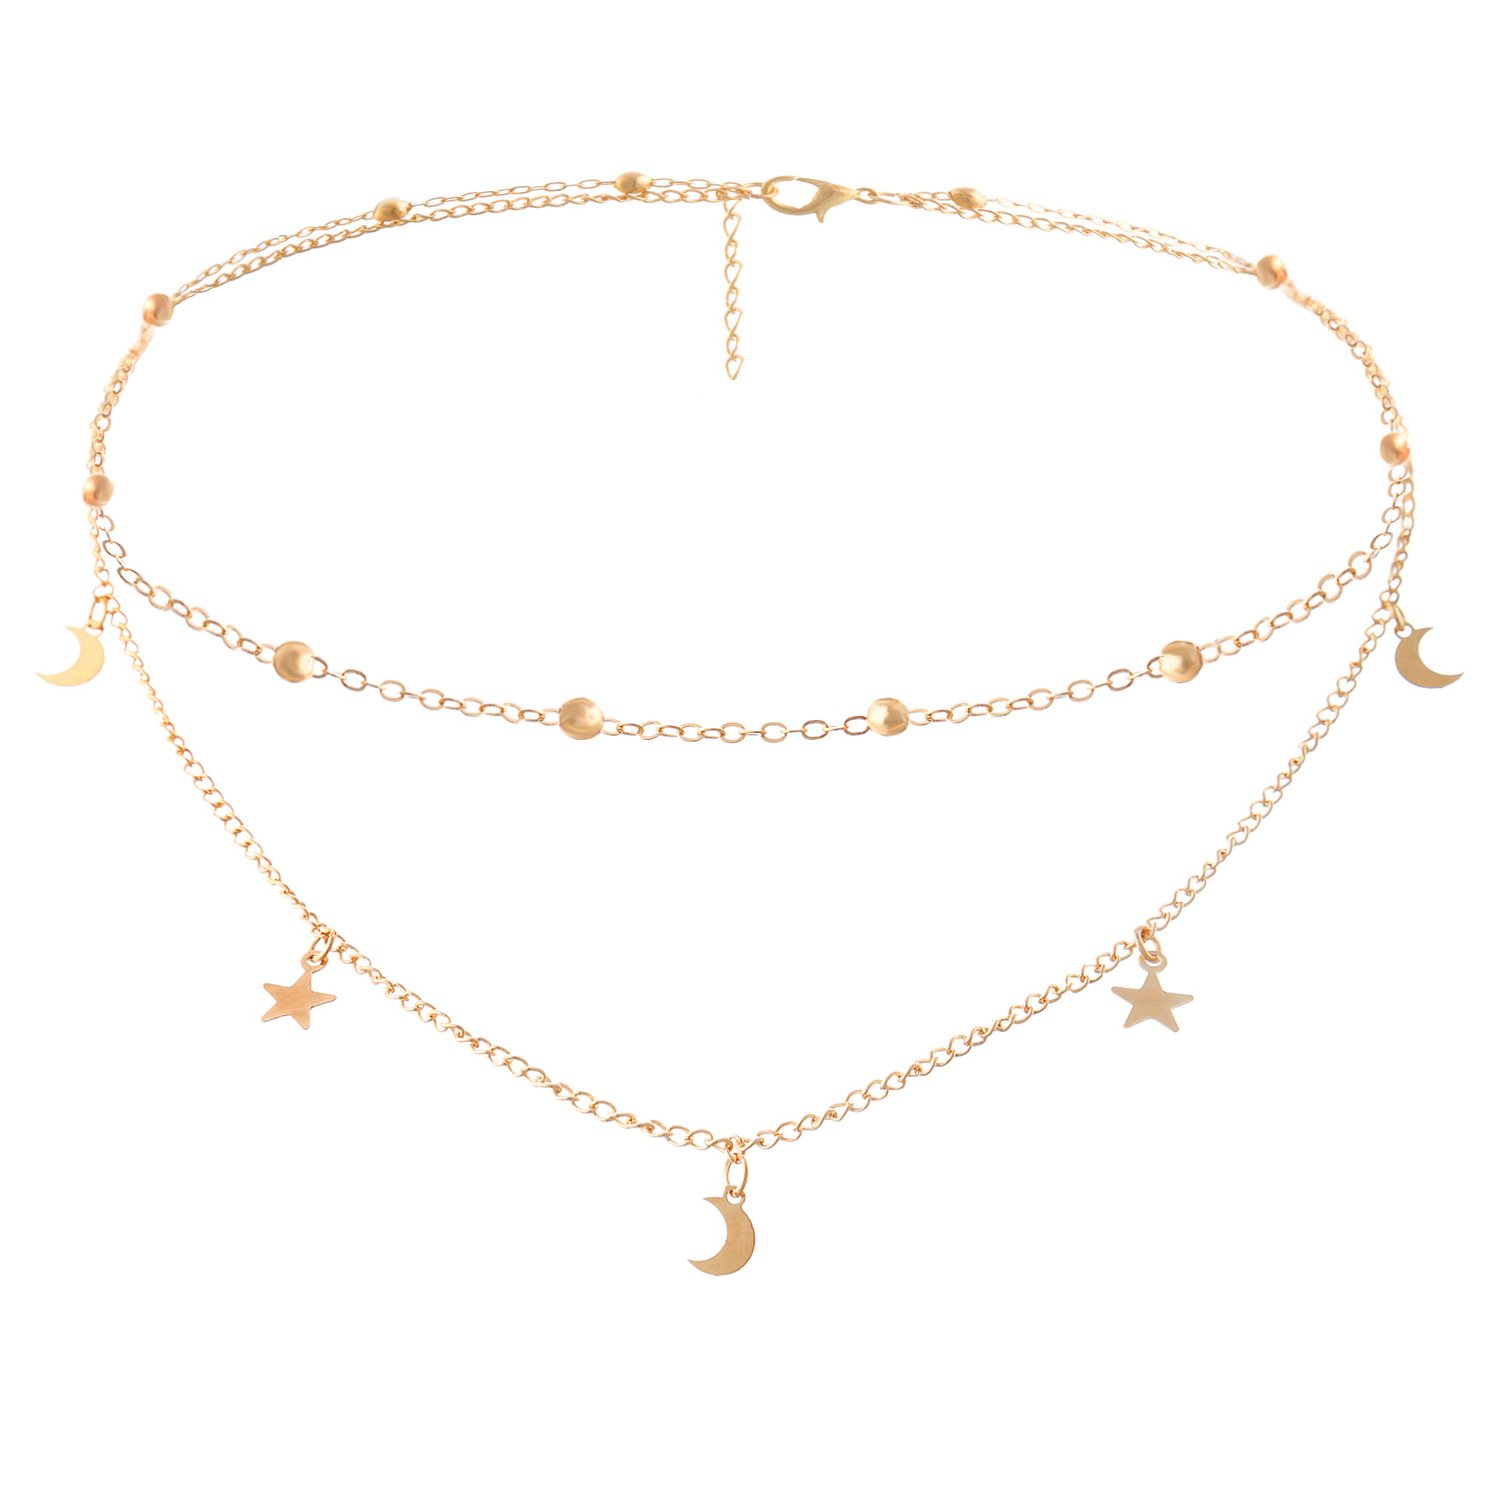 8356a909cfed2 BaubleStar Star Moon Charm Necklace Layering Chain Choker Women Girls